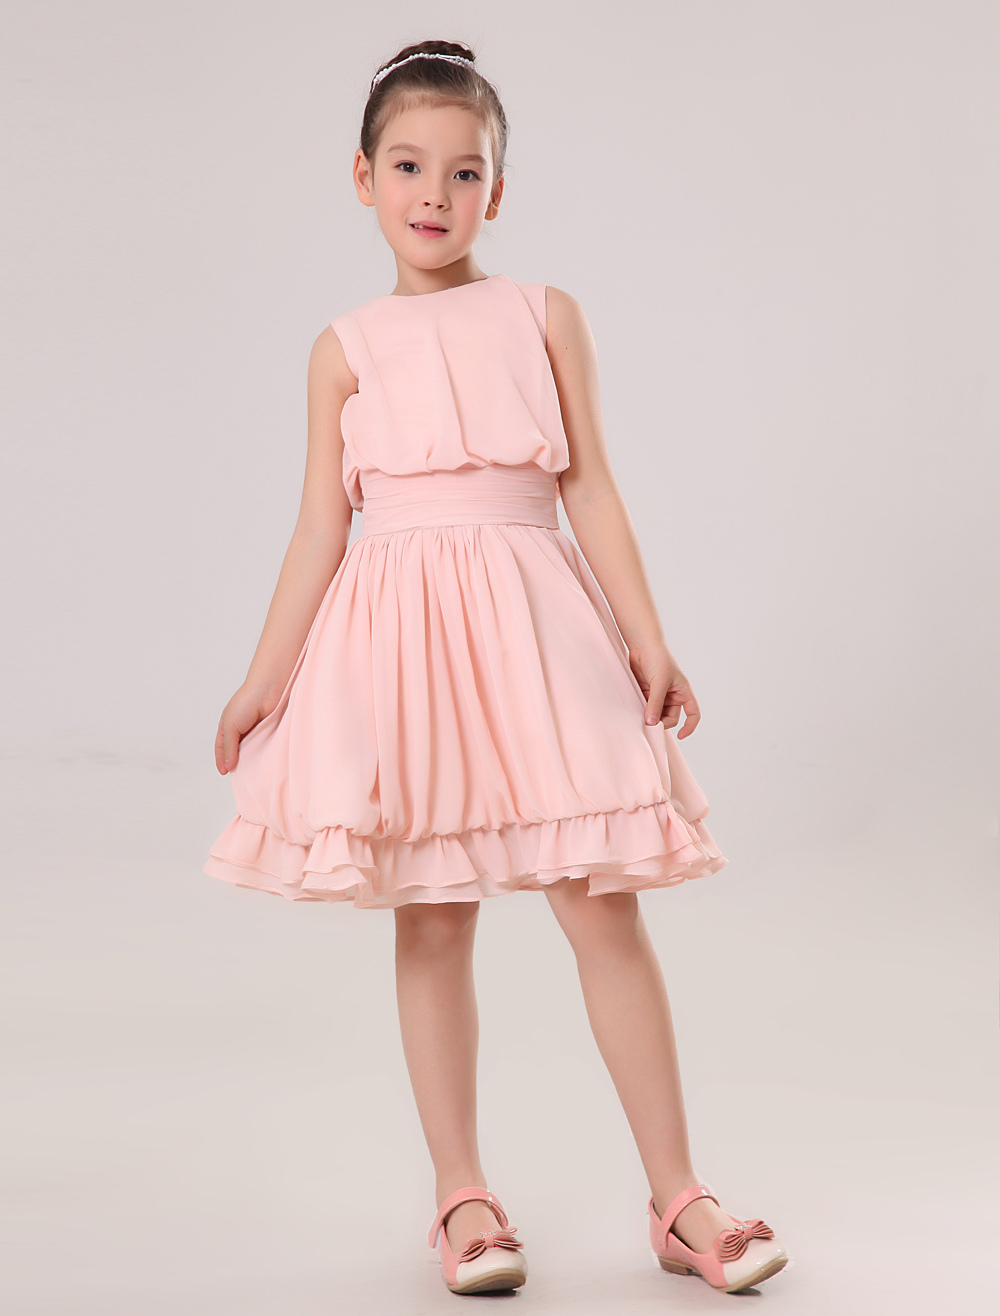 Peach Flower Girl Dresses Chiffon A line Knee Length Toddler's Dinner Dress